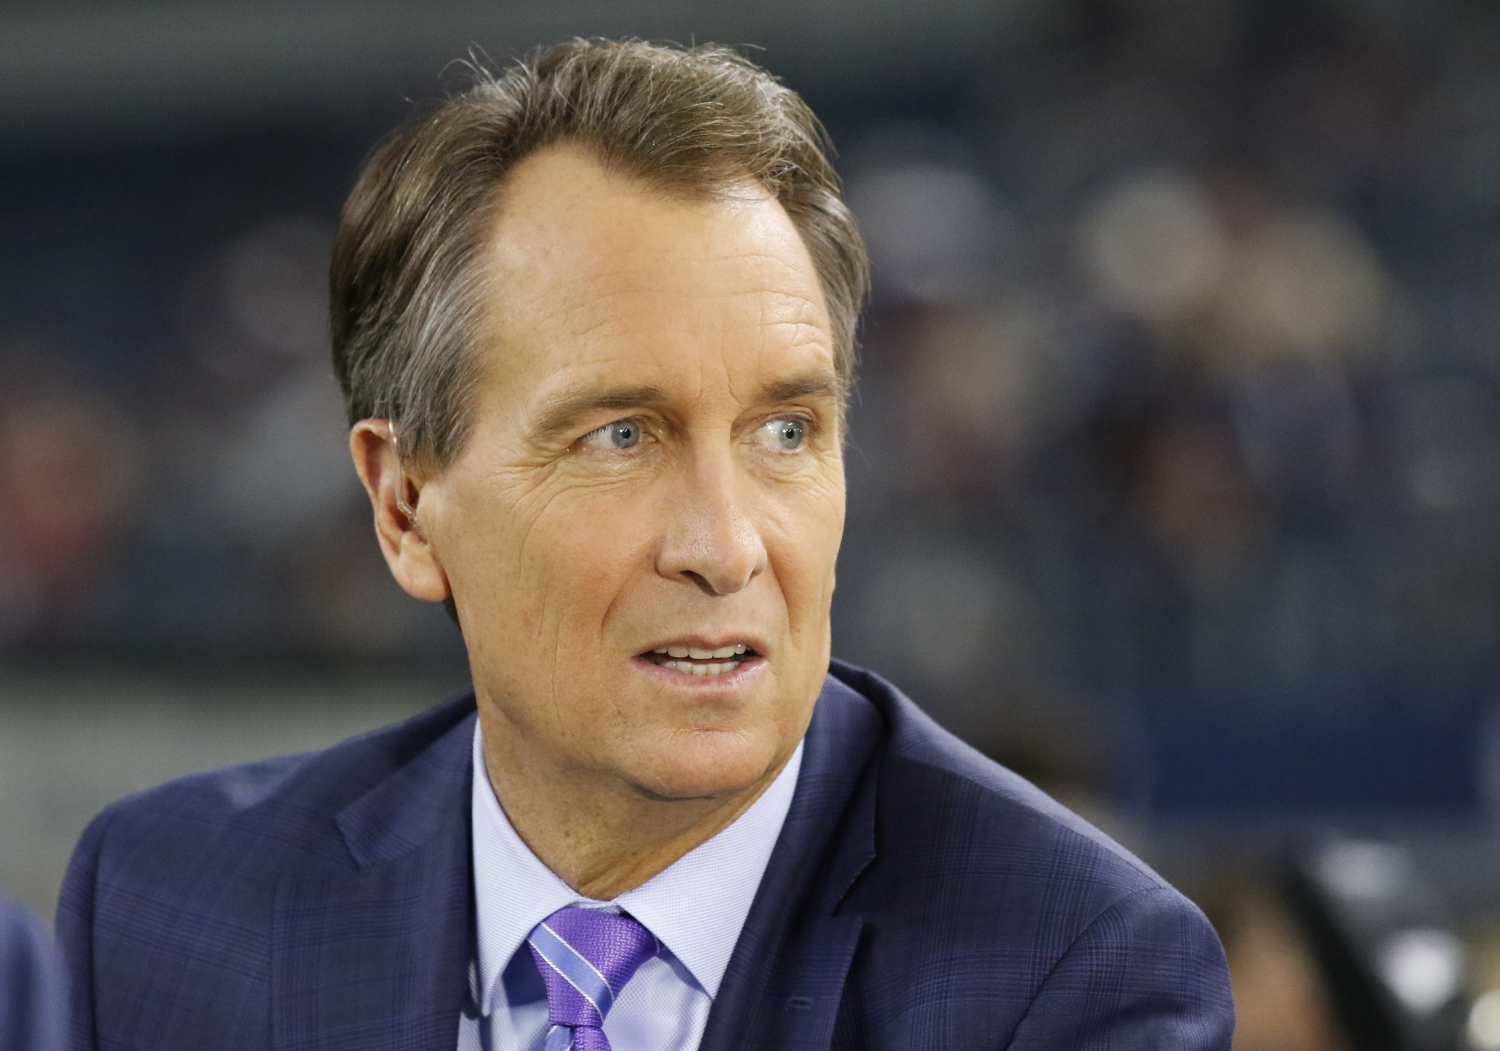 Cris Collinsworth was a star for the Cincinnati Bengals. However, he once tried to cancel a media responsibility because of a pimple.